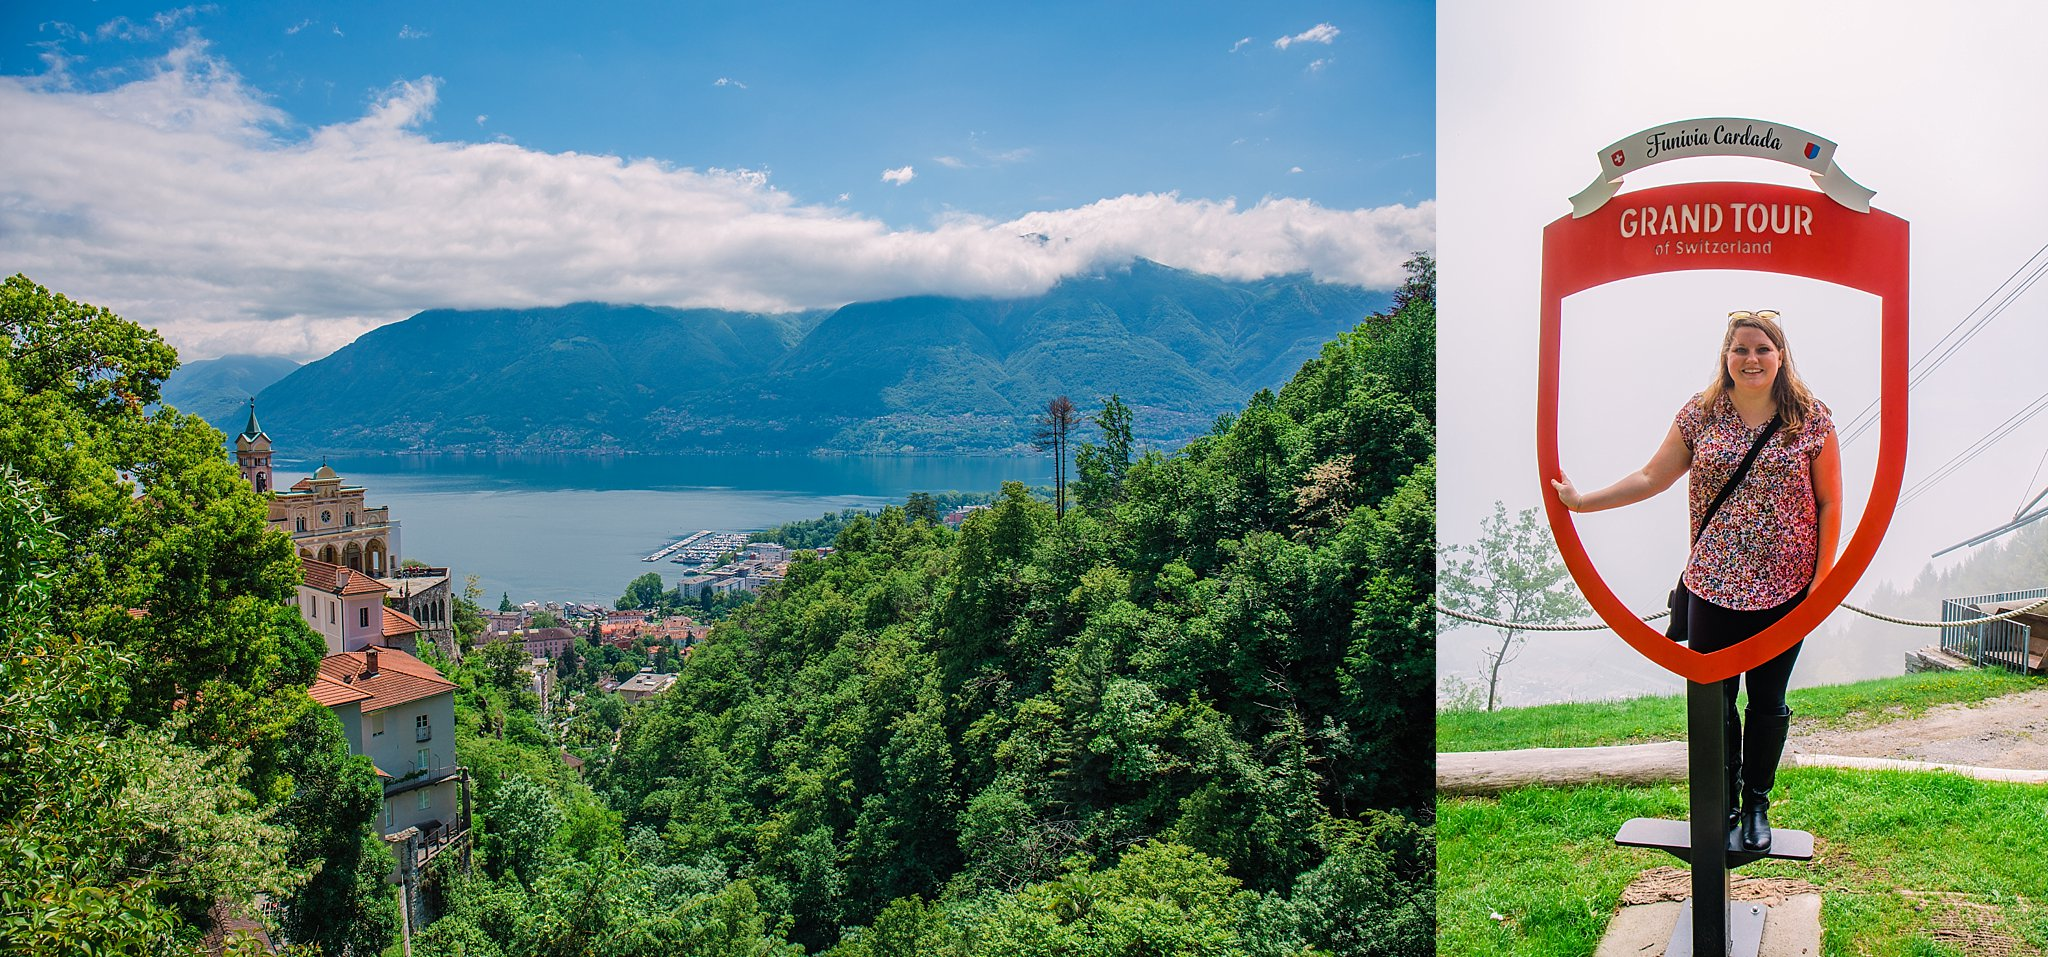 anniversary,couple vacation,europe,honeymoon,locarno,swiss,switzerland,vacation,